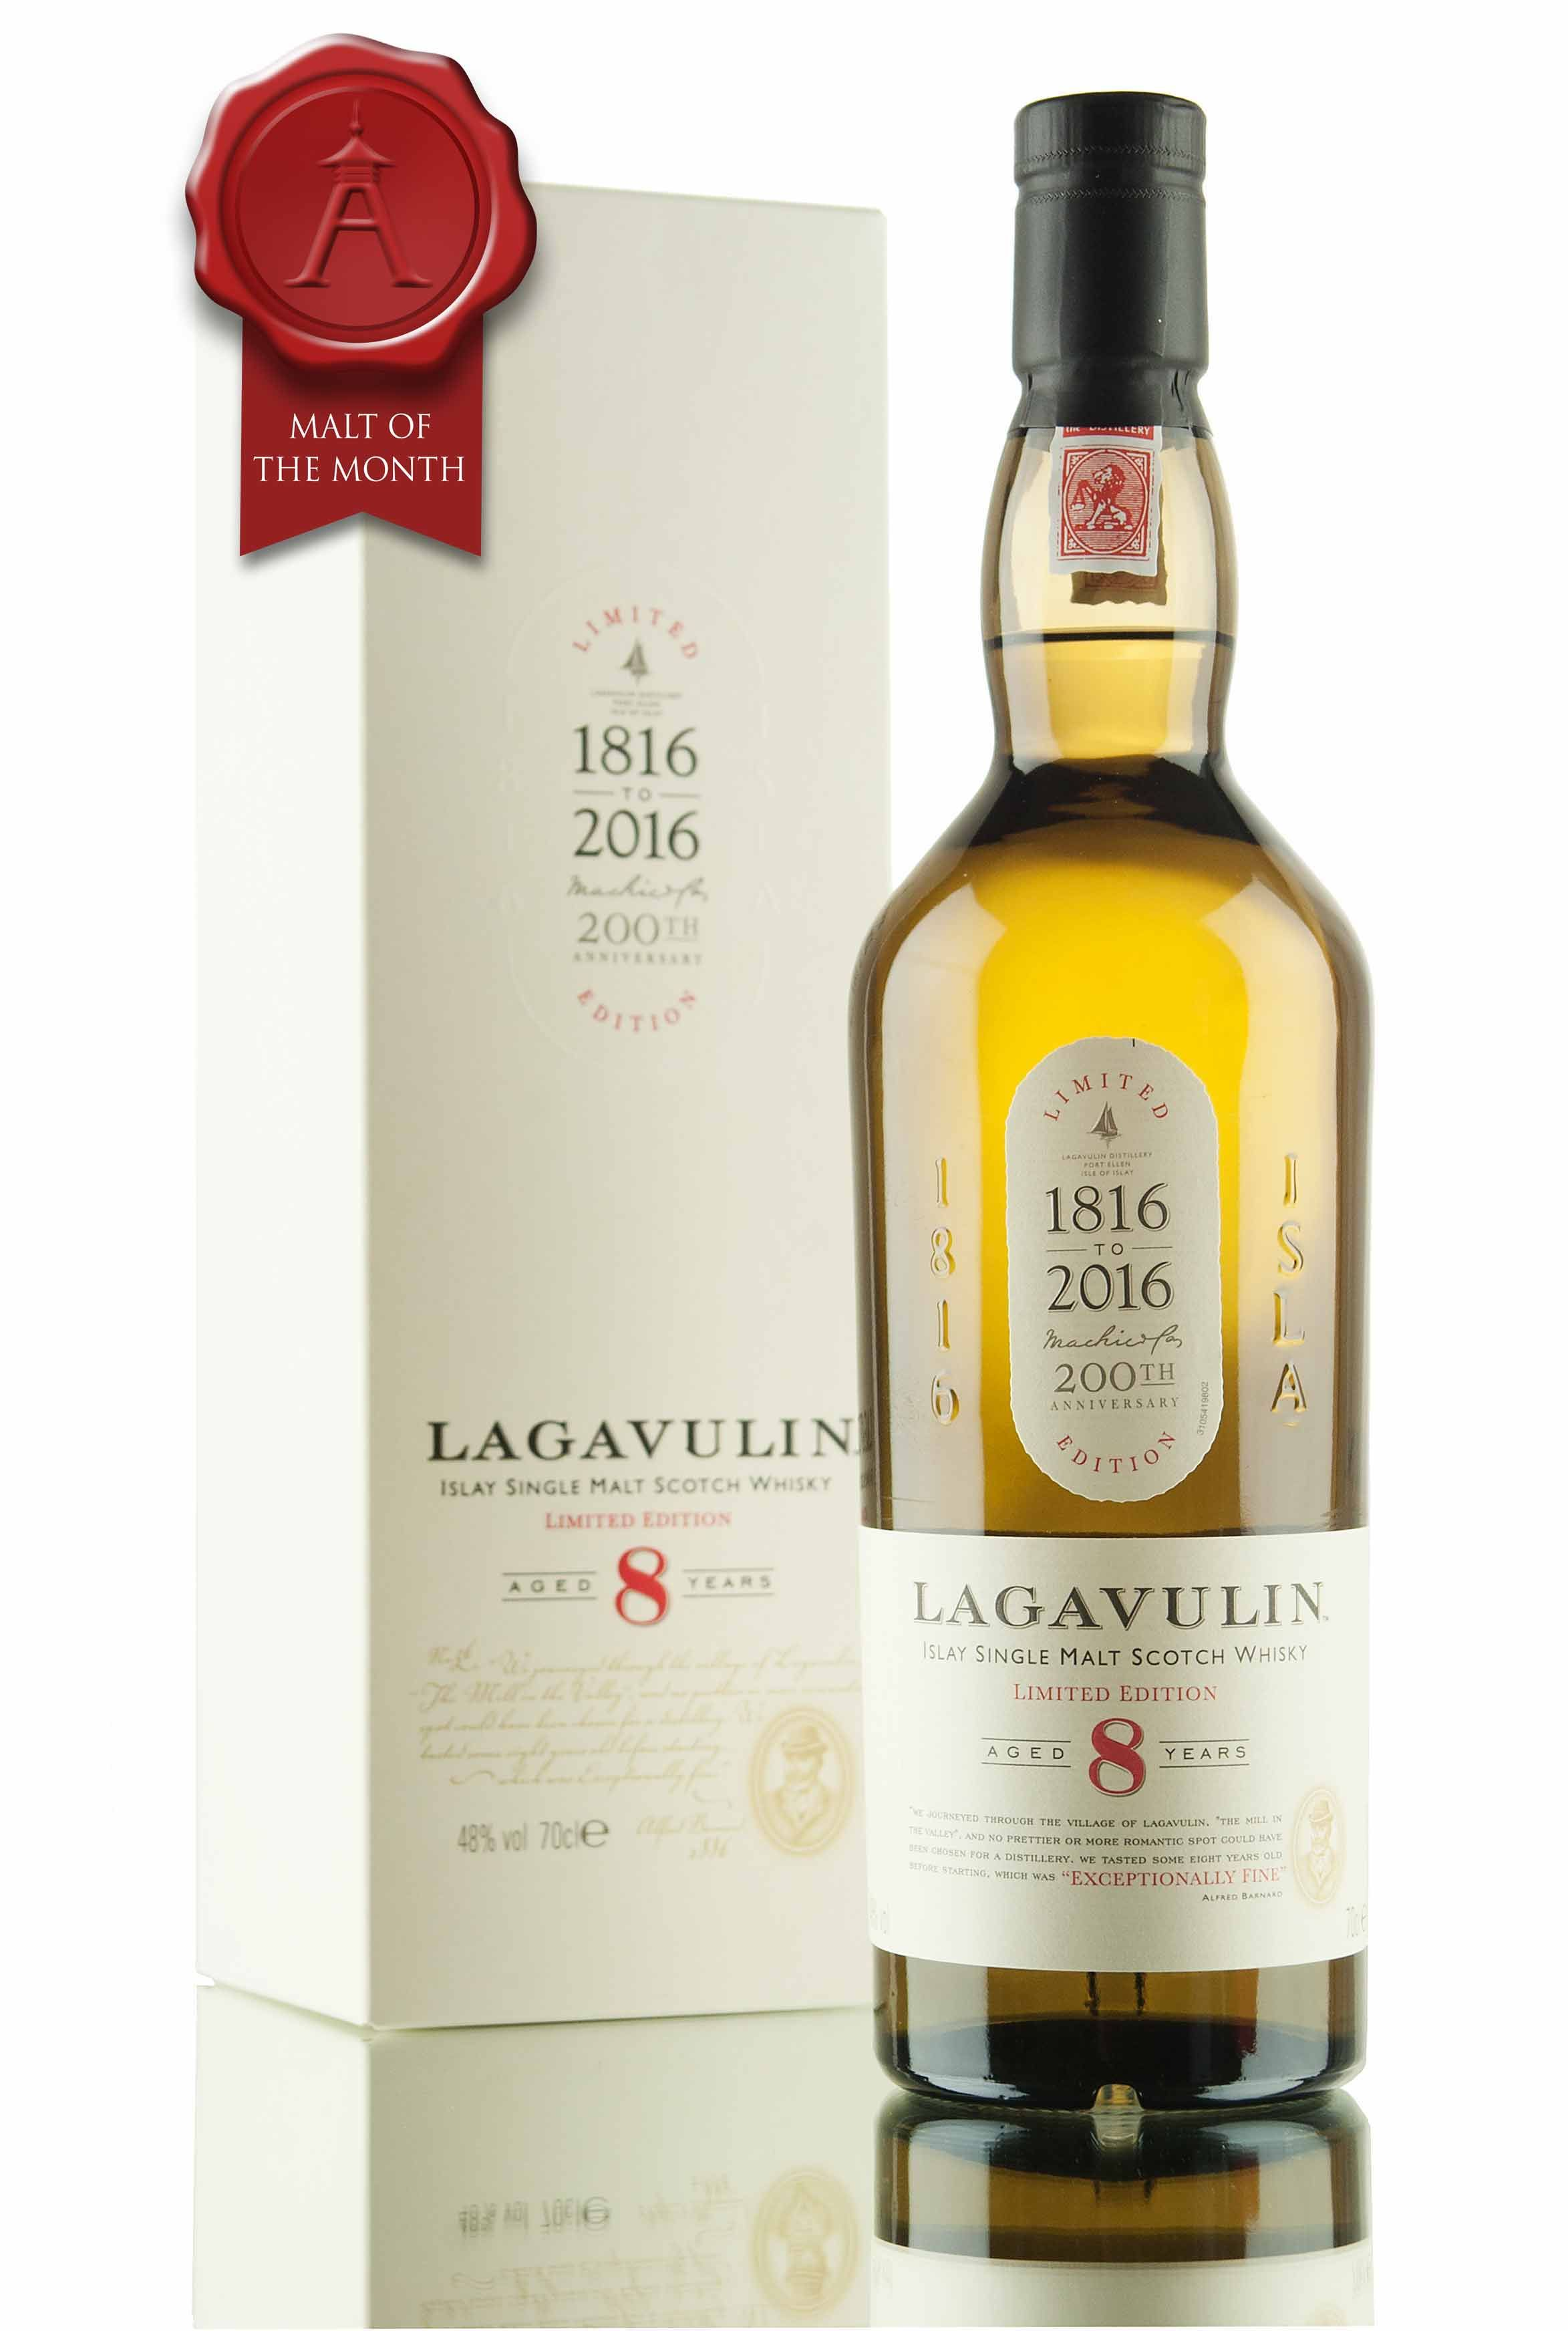 Malt of the Month for April 16 is this 8 year old Lagavulin. Bottled to celebrate the 200th Anniversary (1816 - 2016) of this much loved Islay distillery.